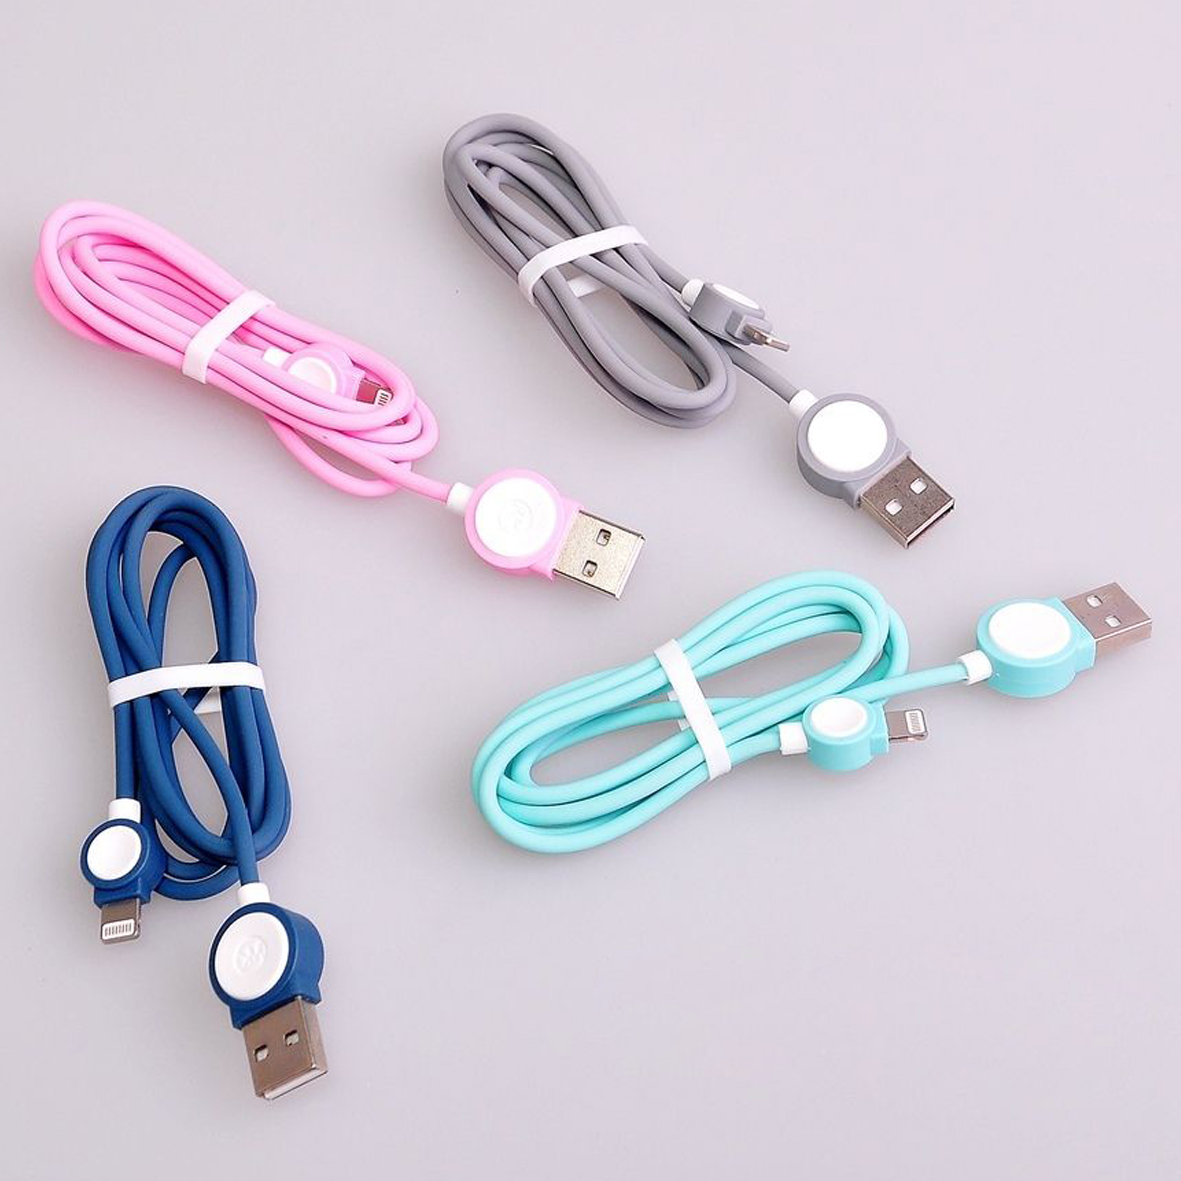 Kabel Data Hp Handphone Terbaru Elevenia Cat Food Makanan Kucing Whiskas Junior Sachet 85 Gram Wk Design Rattle Drum Charging Iphone 5 6 Ipad Mini Lightning